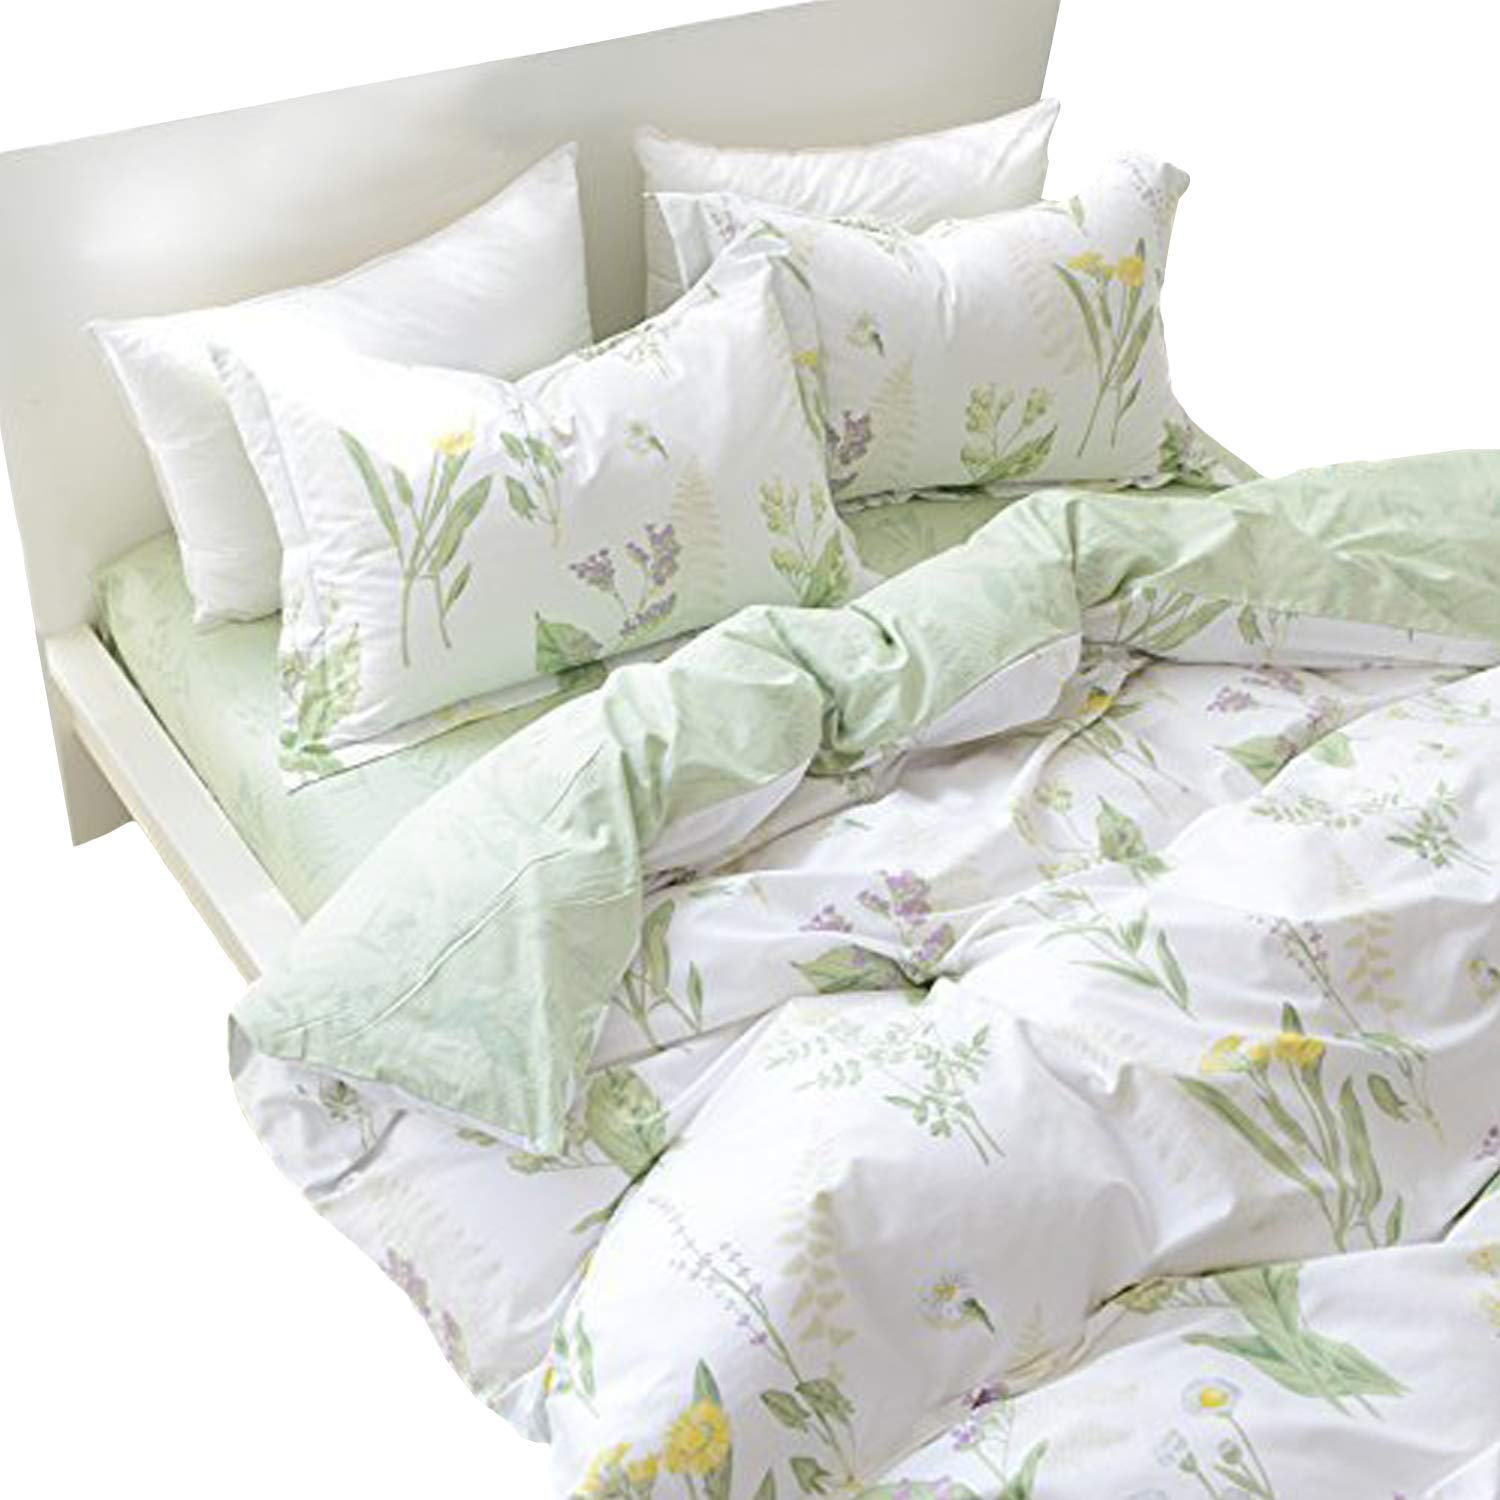 FADFAY Shabby Green Fashionable Floral Duvet Cover Set 100% Cotton Twin Extra Long Bedding Set 3-Piece:1duvet Cover & 2pillowcases,Twin XL Size for College Dorm